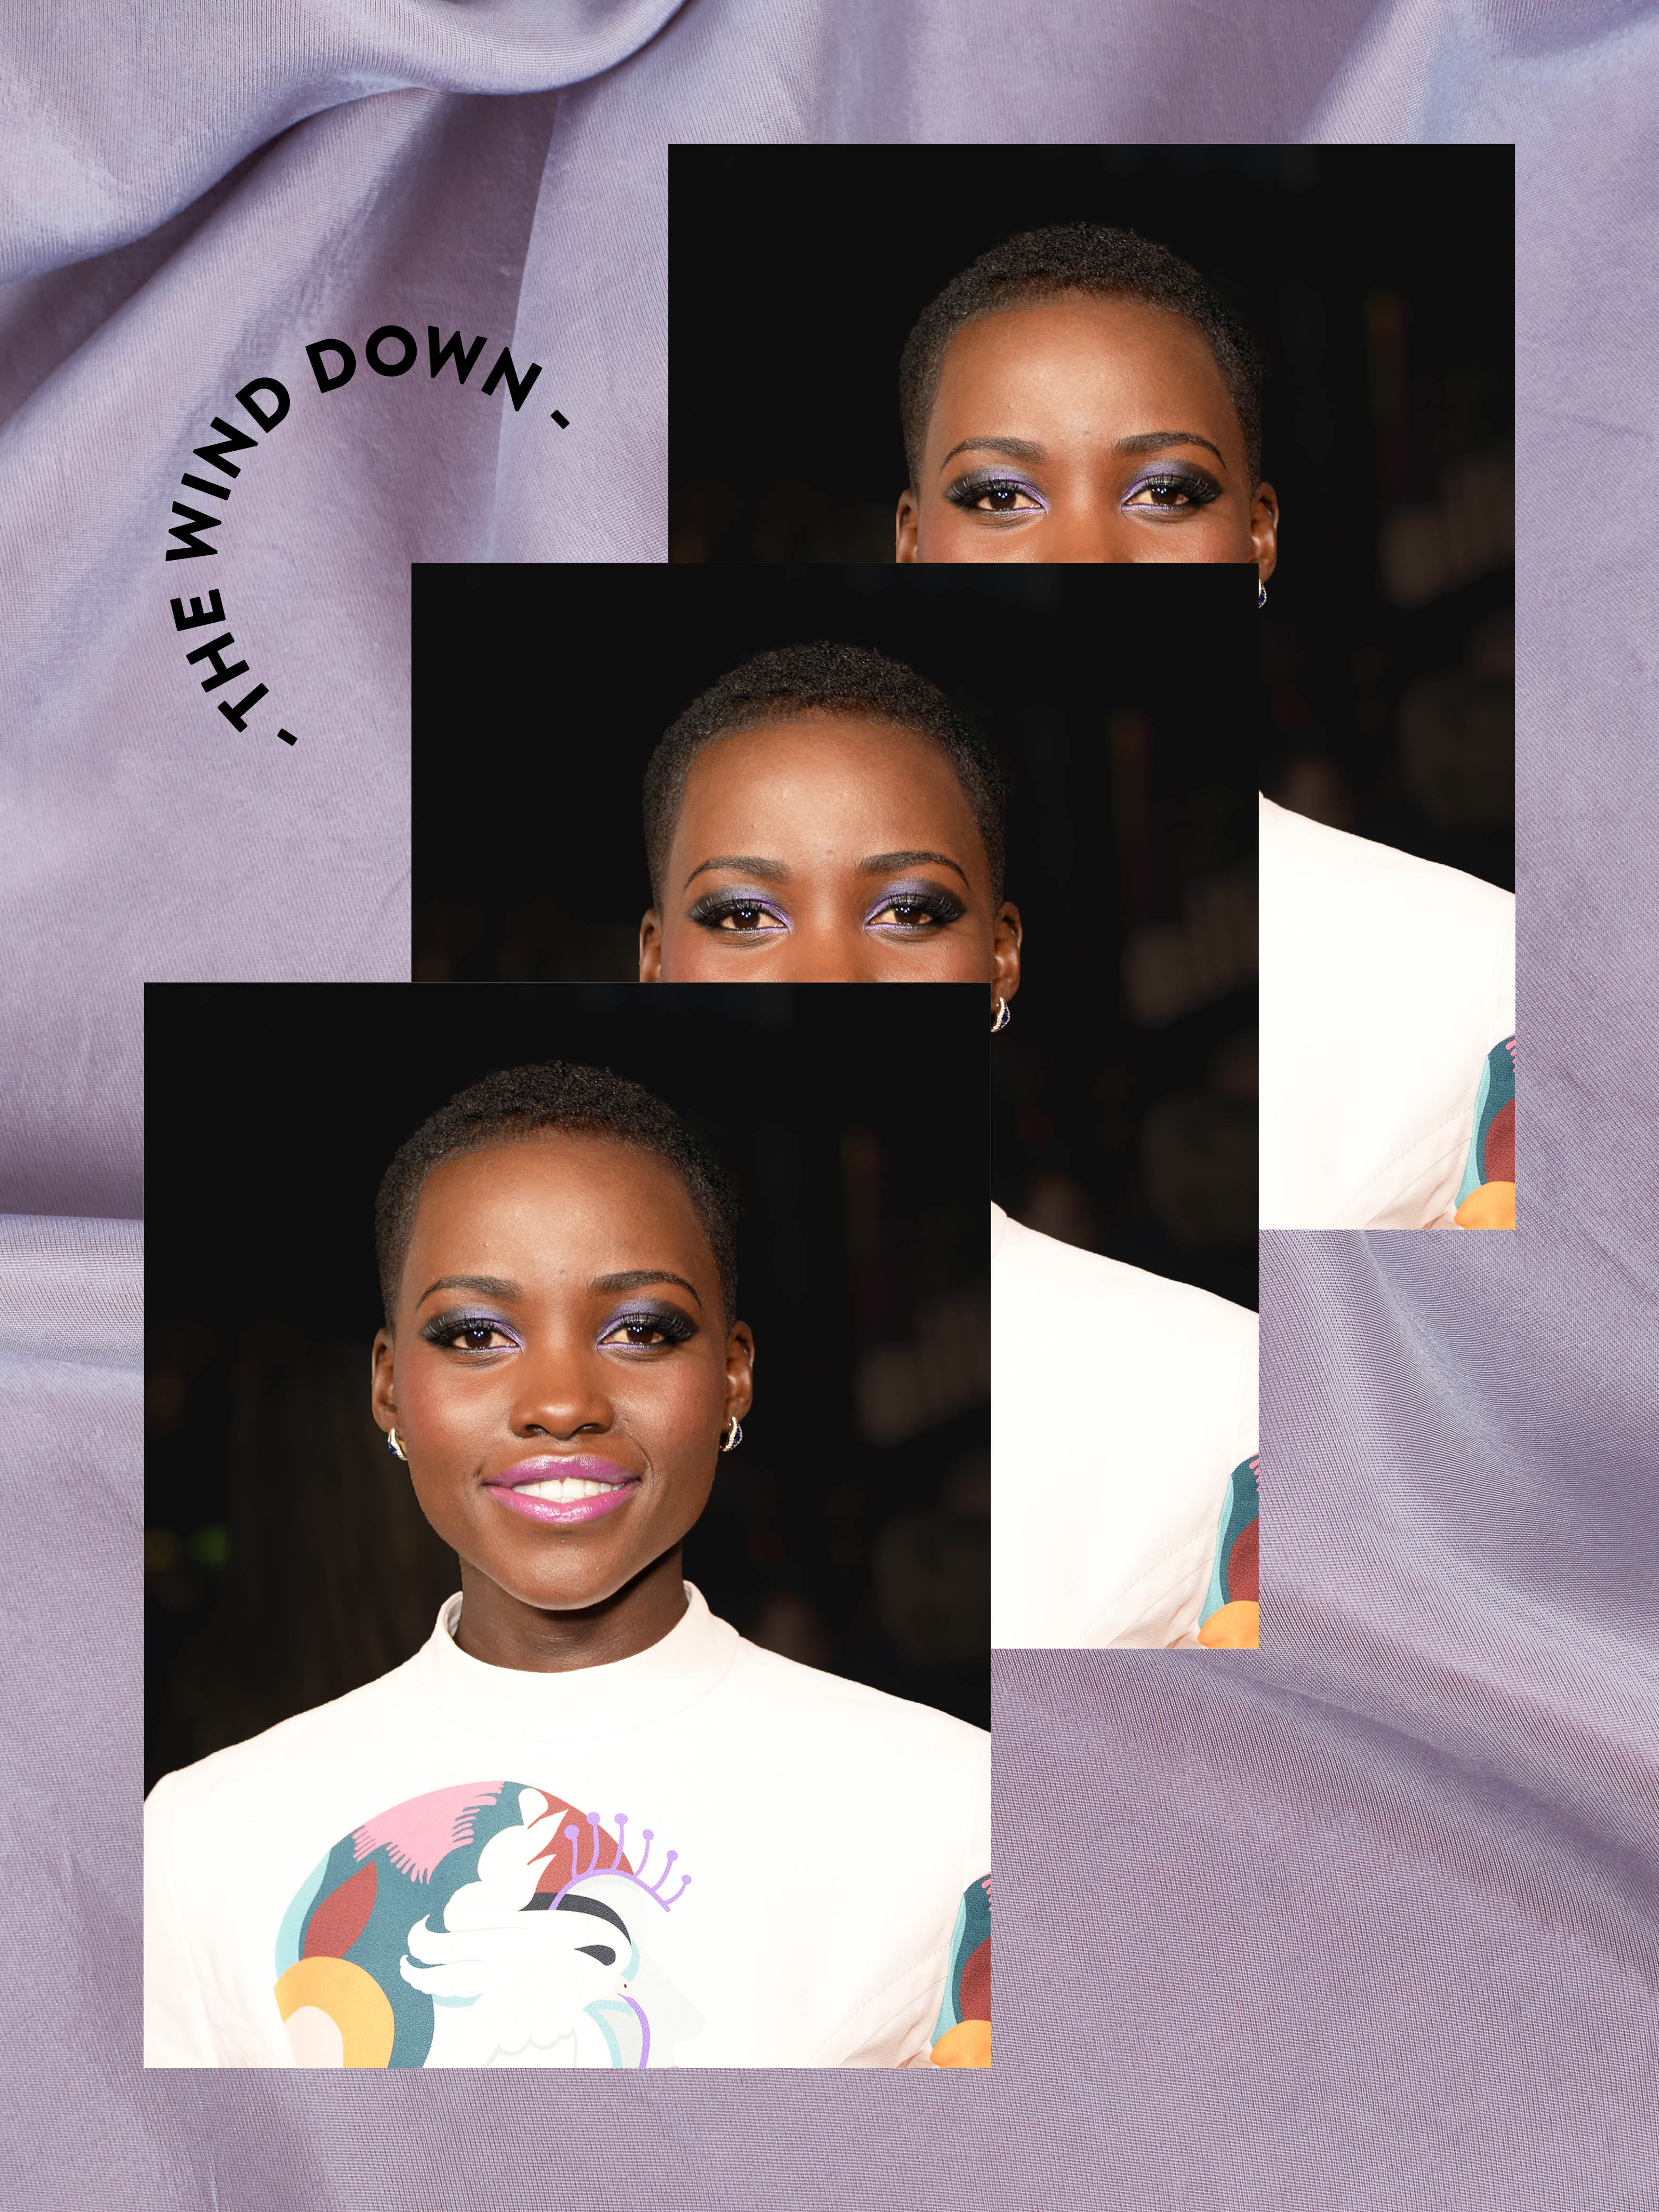 Lupita Nyong'o's Travel Routine Ends With a Foot Bath